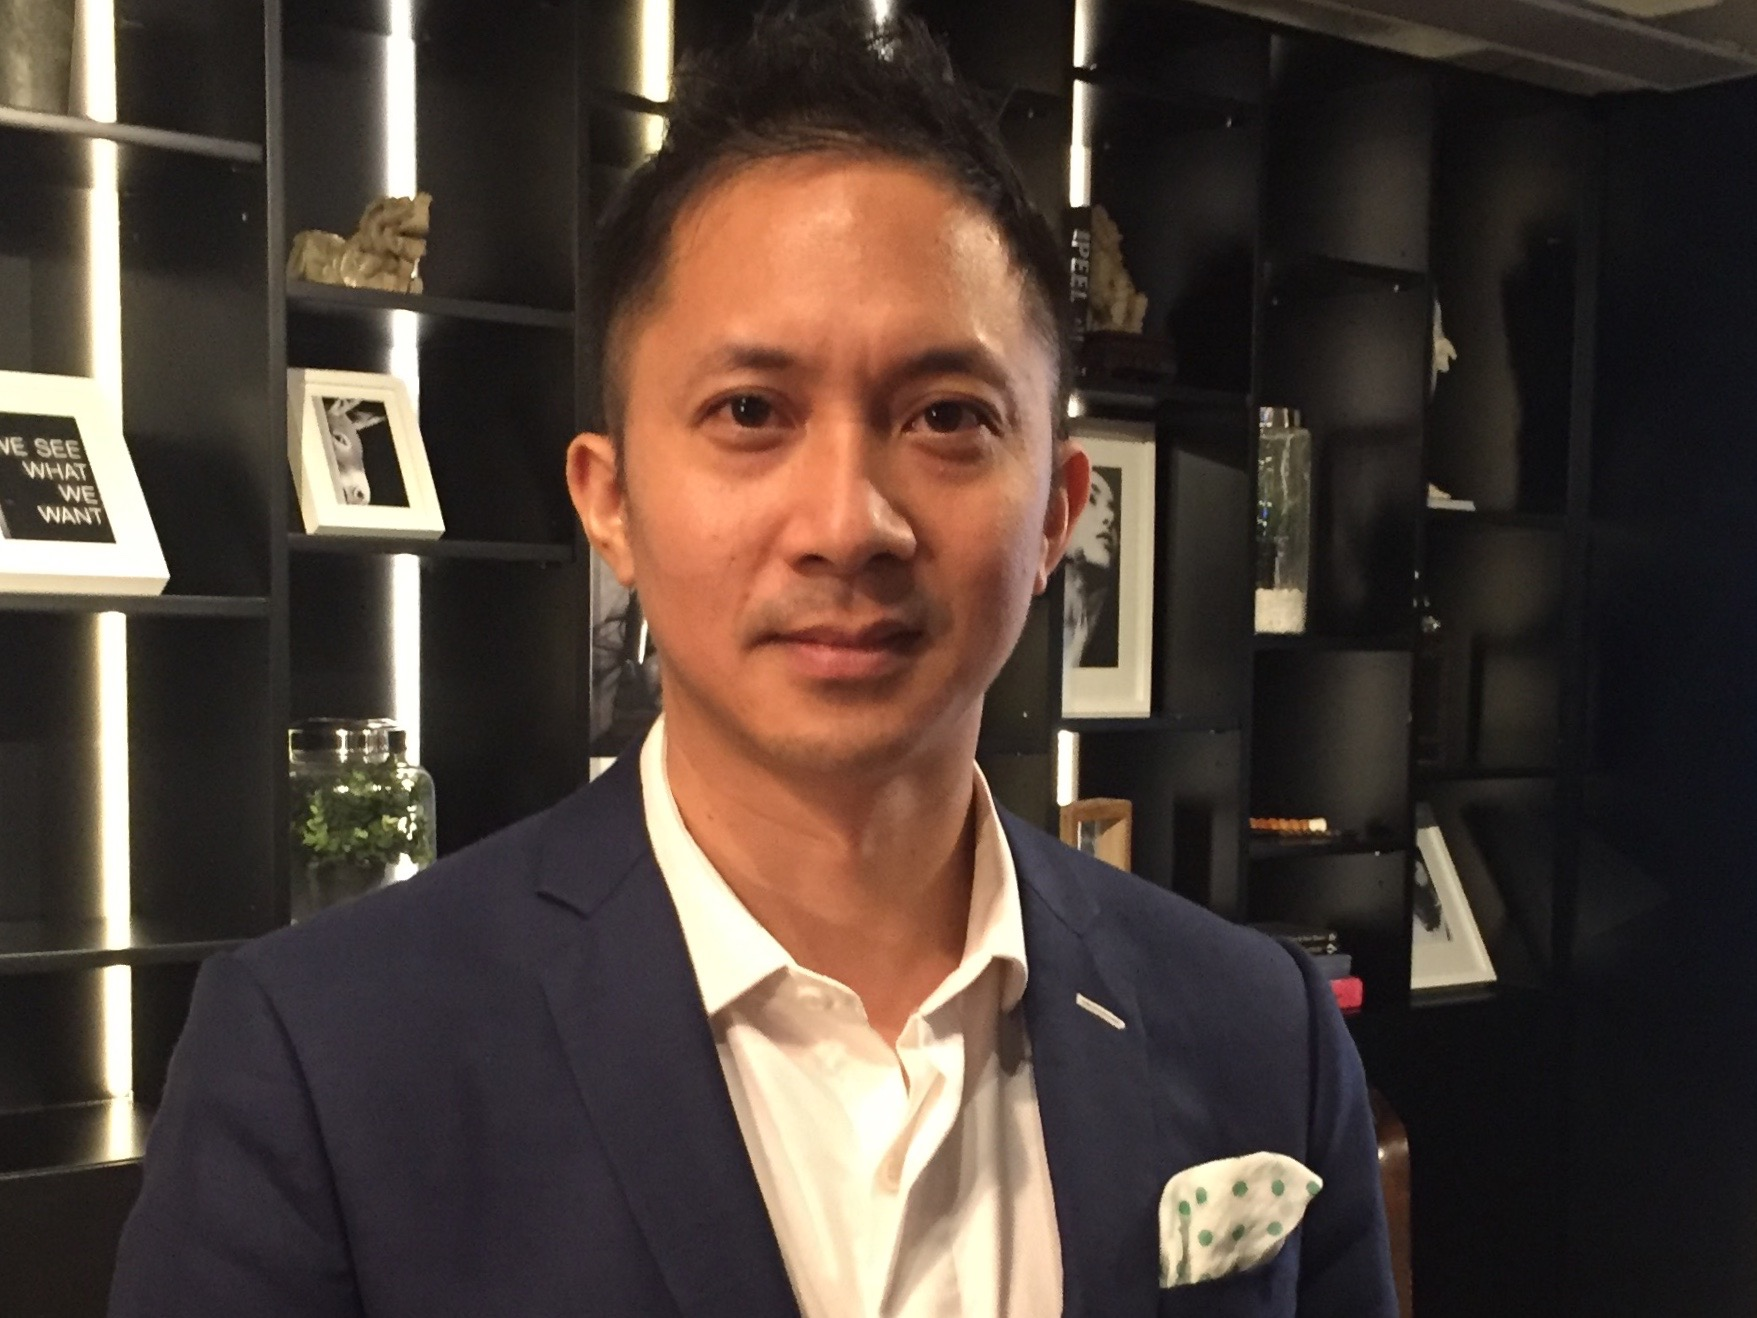 http://www.digitalfinancemedia.com/blog/2017/09/19/jehan-chu/